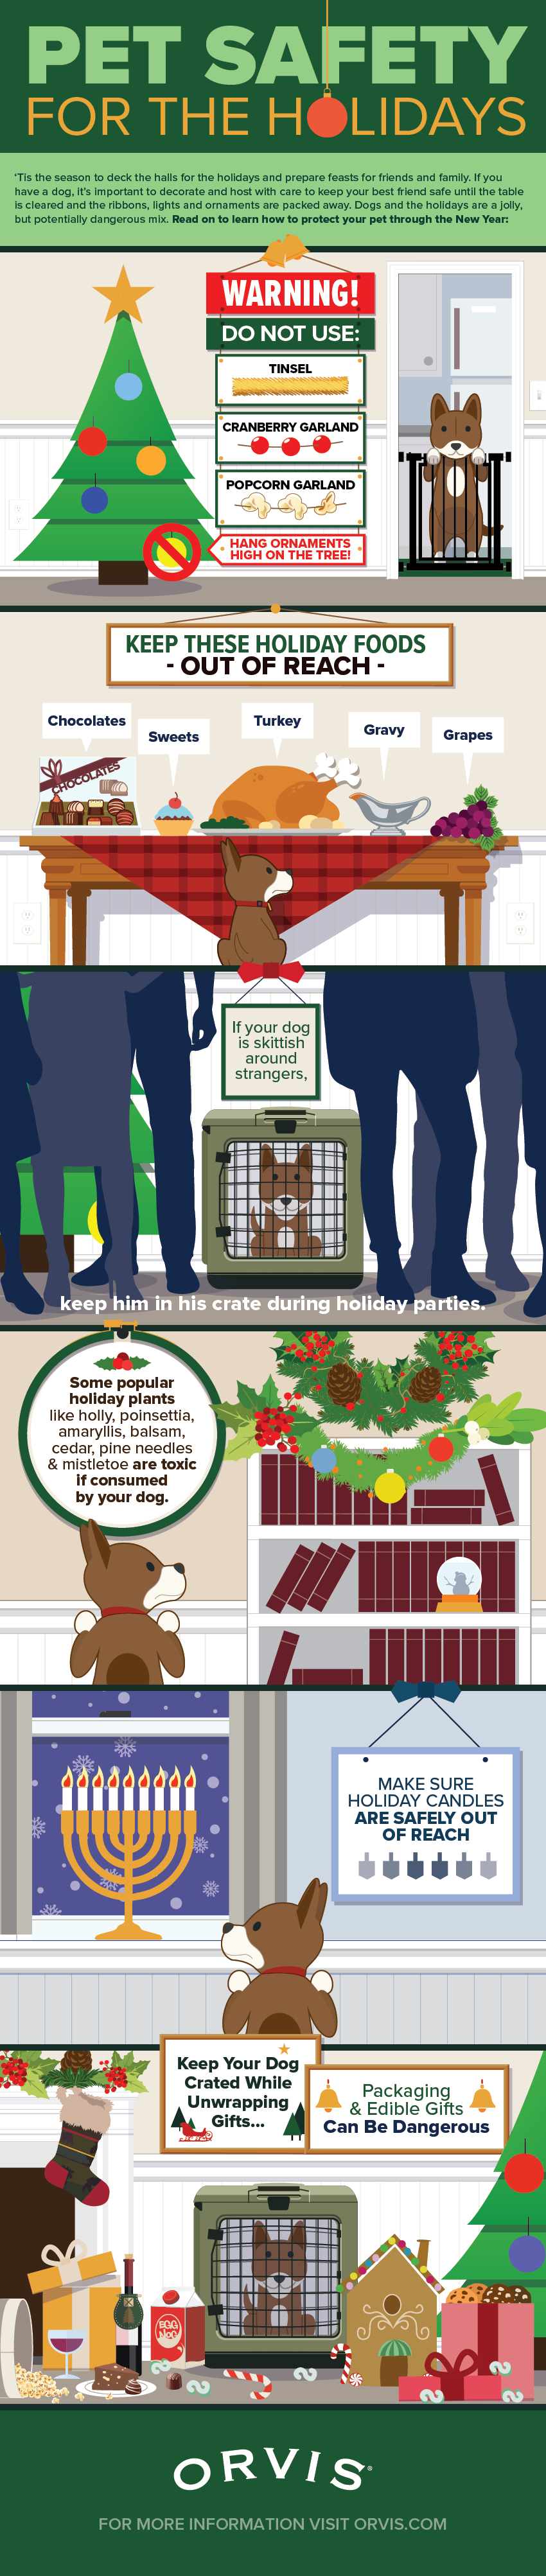 Pet Holiday Safety Tips